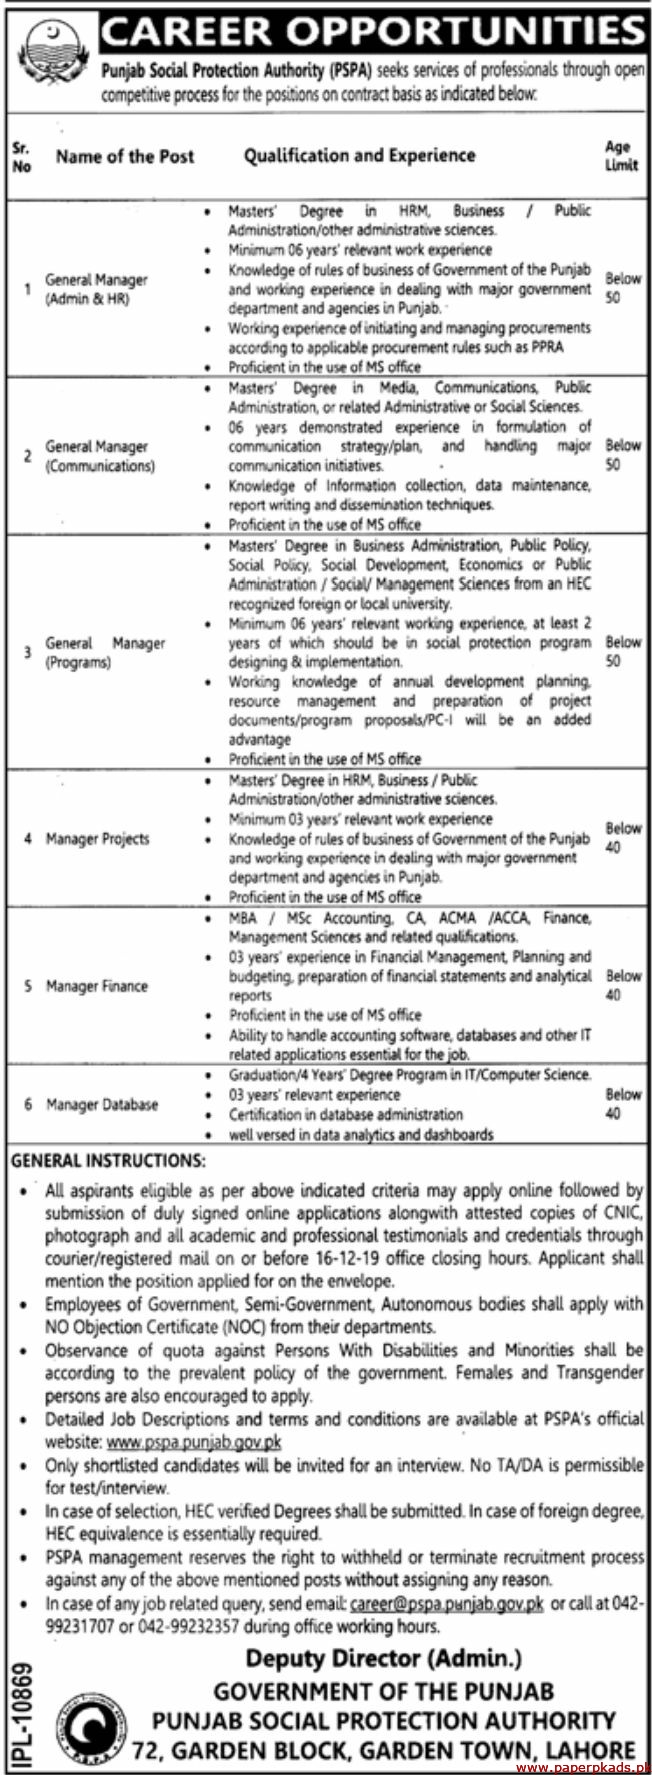 Government of the Punjab - Punjab Social Protection Authority Jobs 2019 Latest